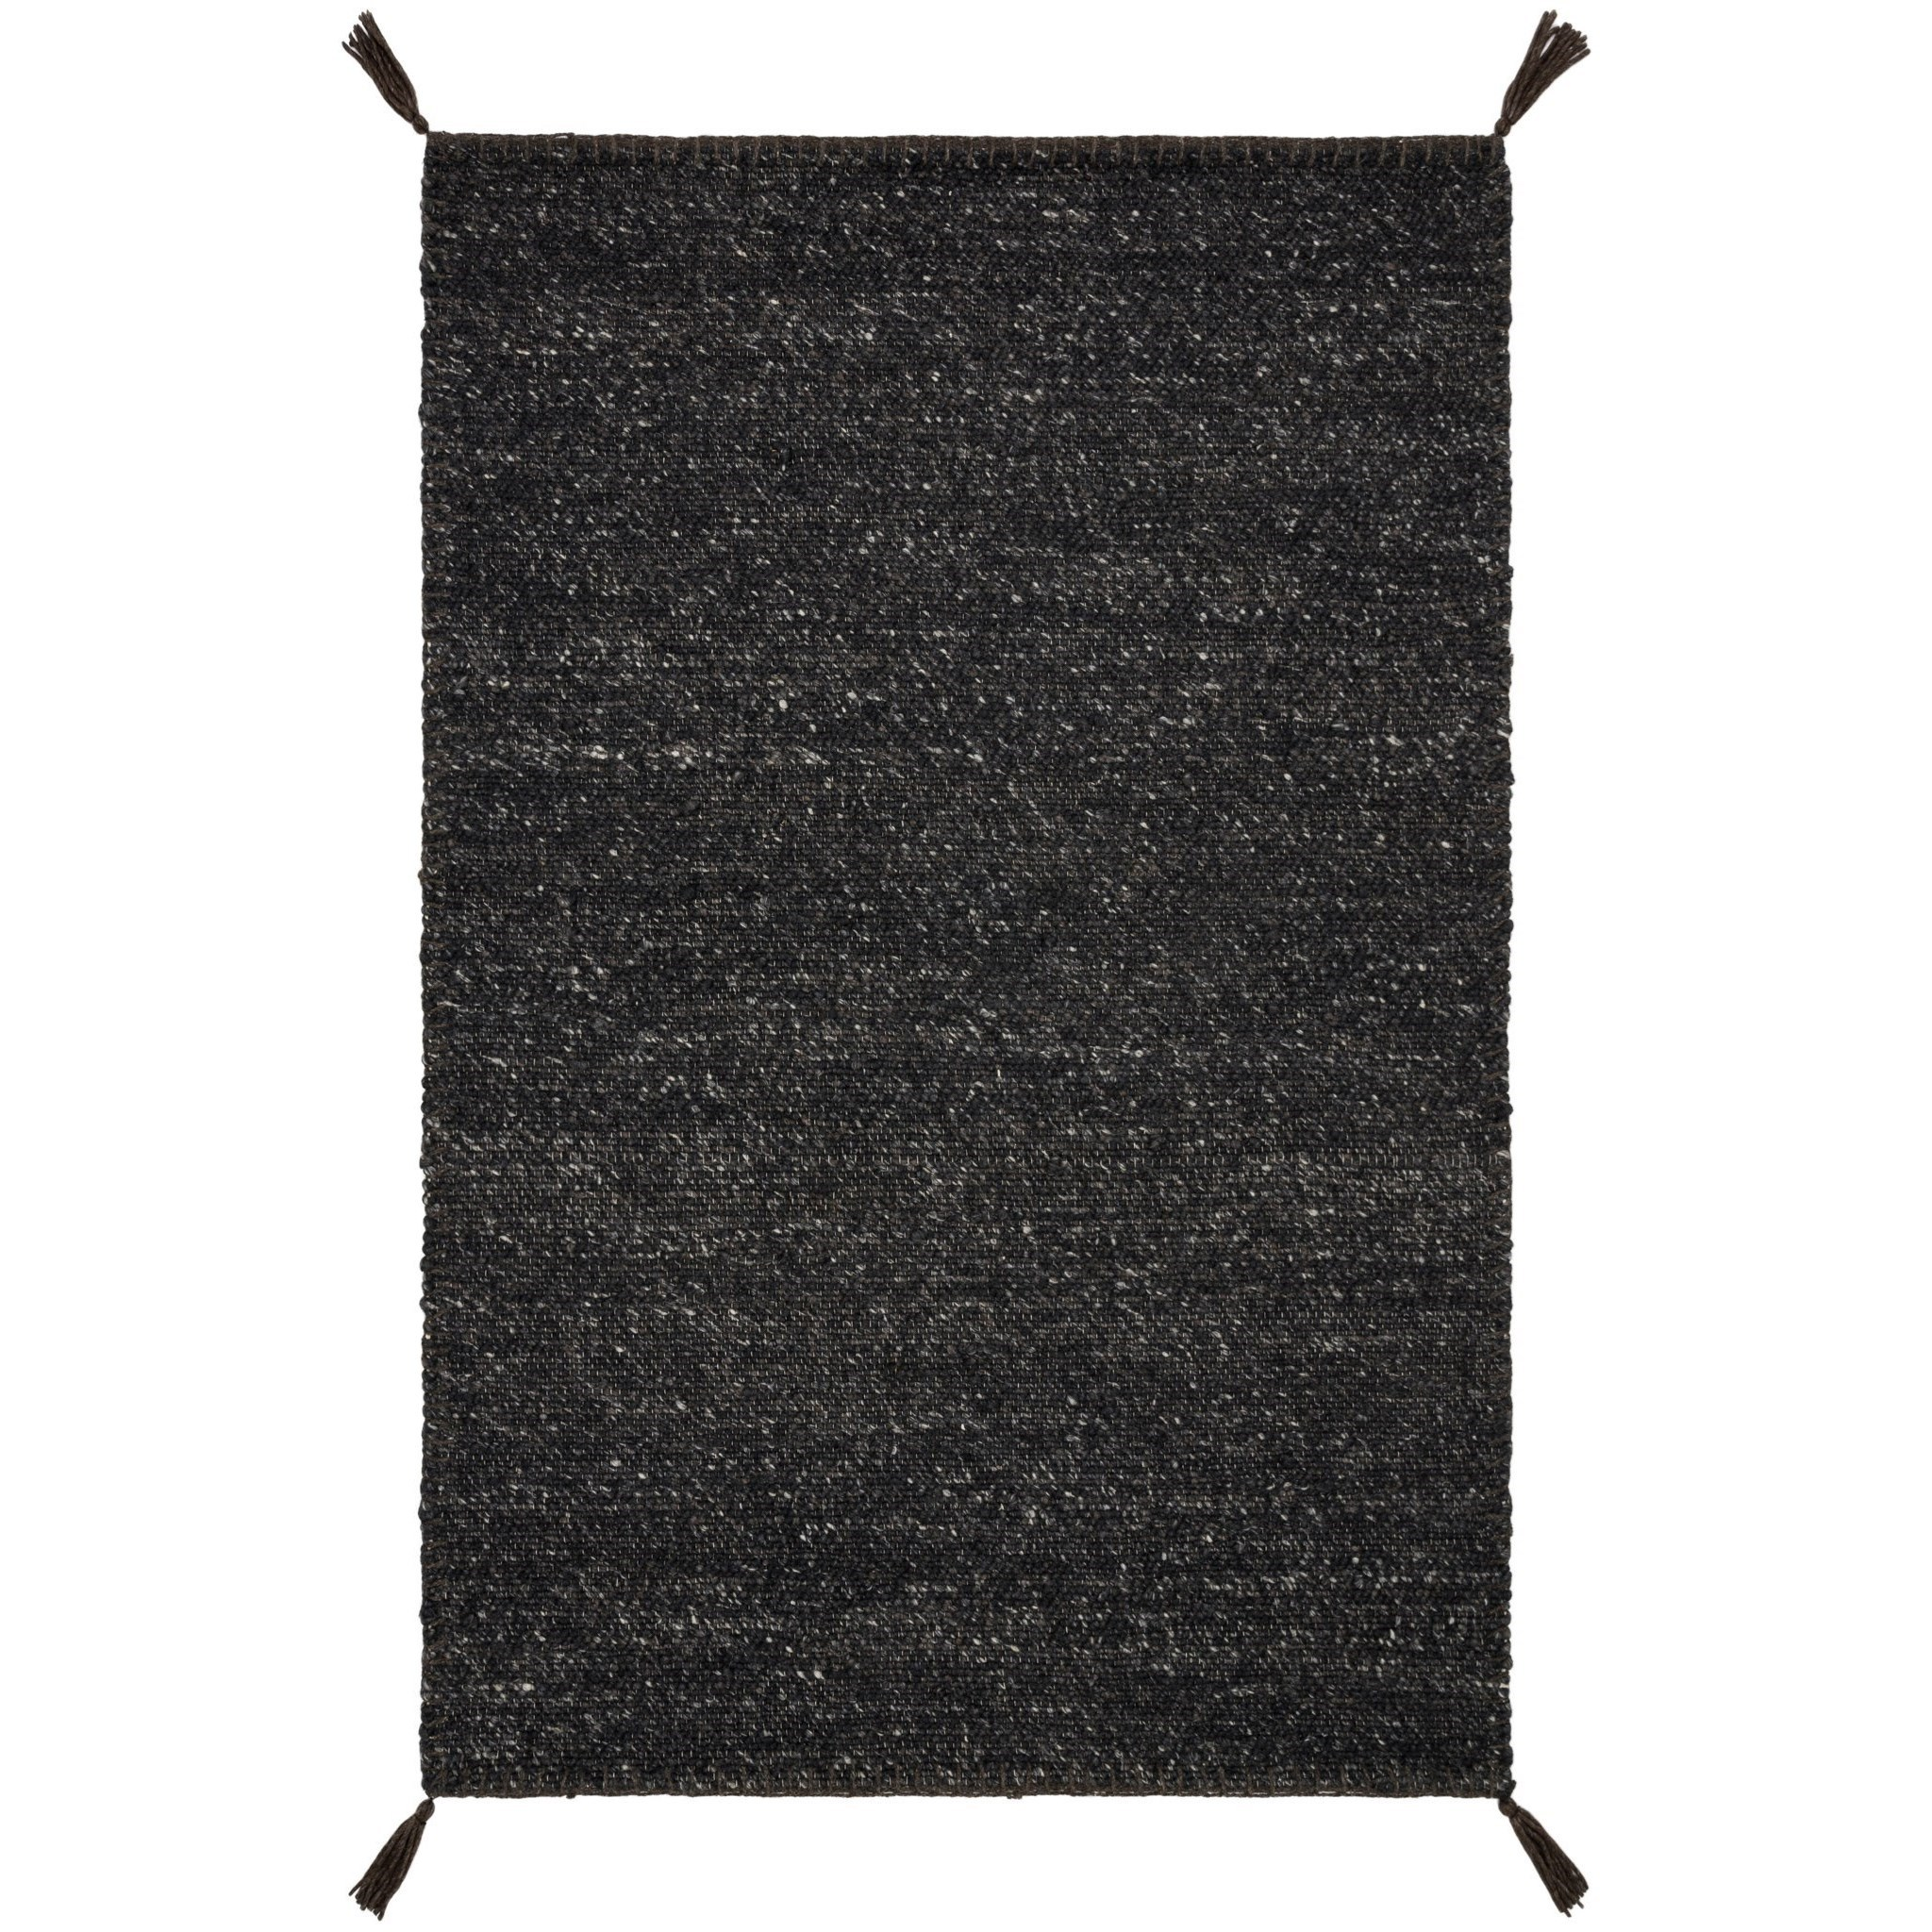 "Oakdell 7'-9"" x 9'-9"" Rug by ED Ellen DeGeneres Crafted by Loloi at Belfort Furniture"